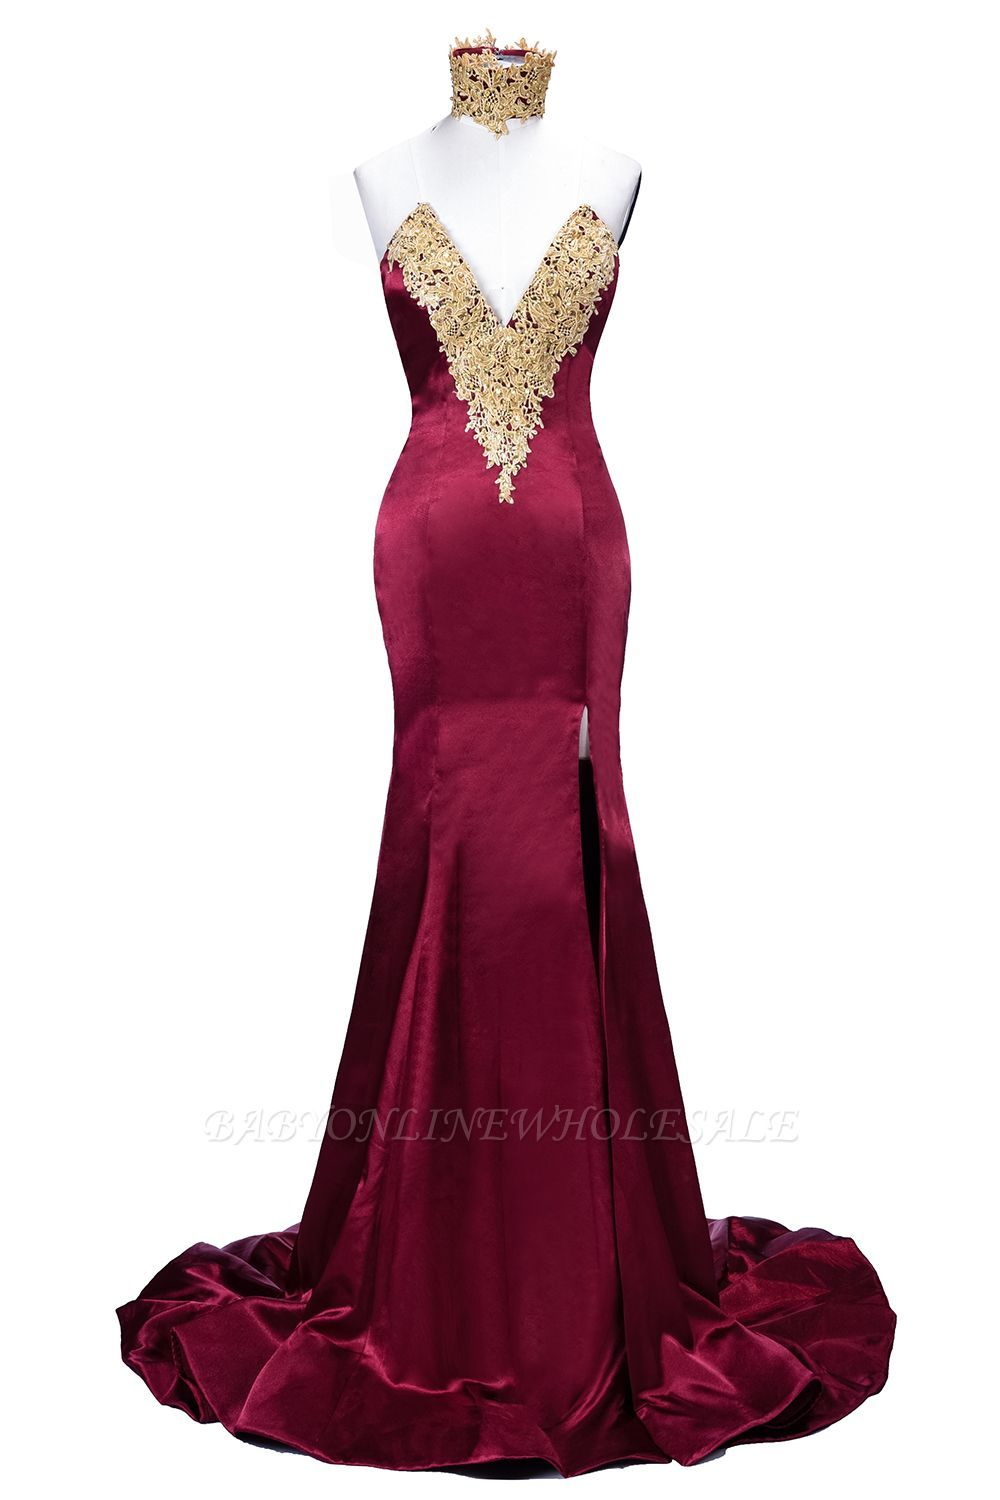 Theresia mermaid high neck frontsplit burgundy lace appliques